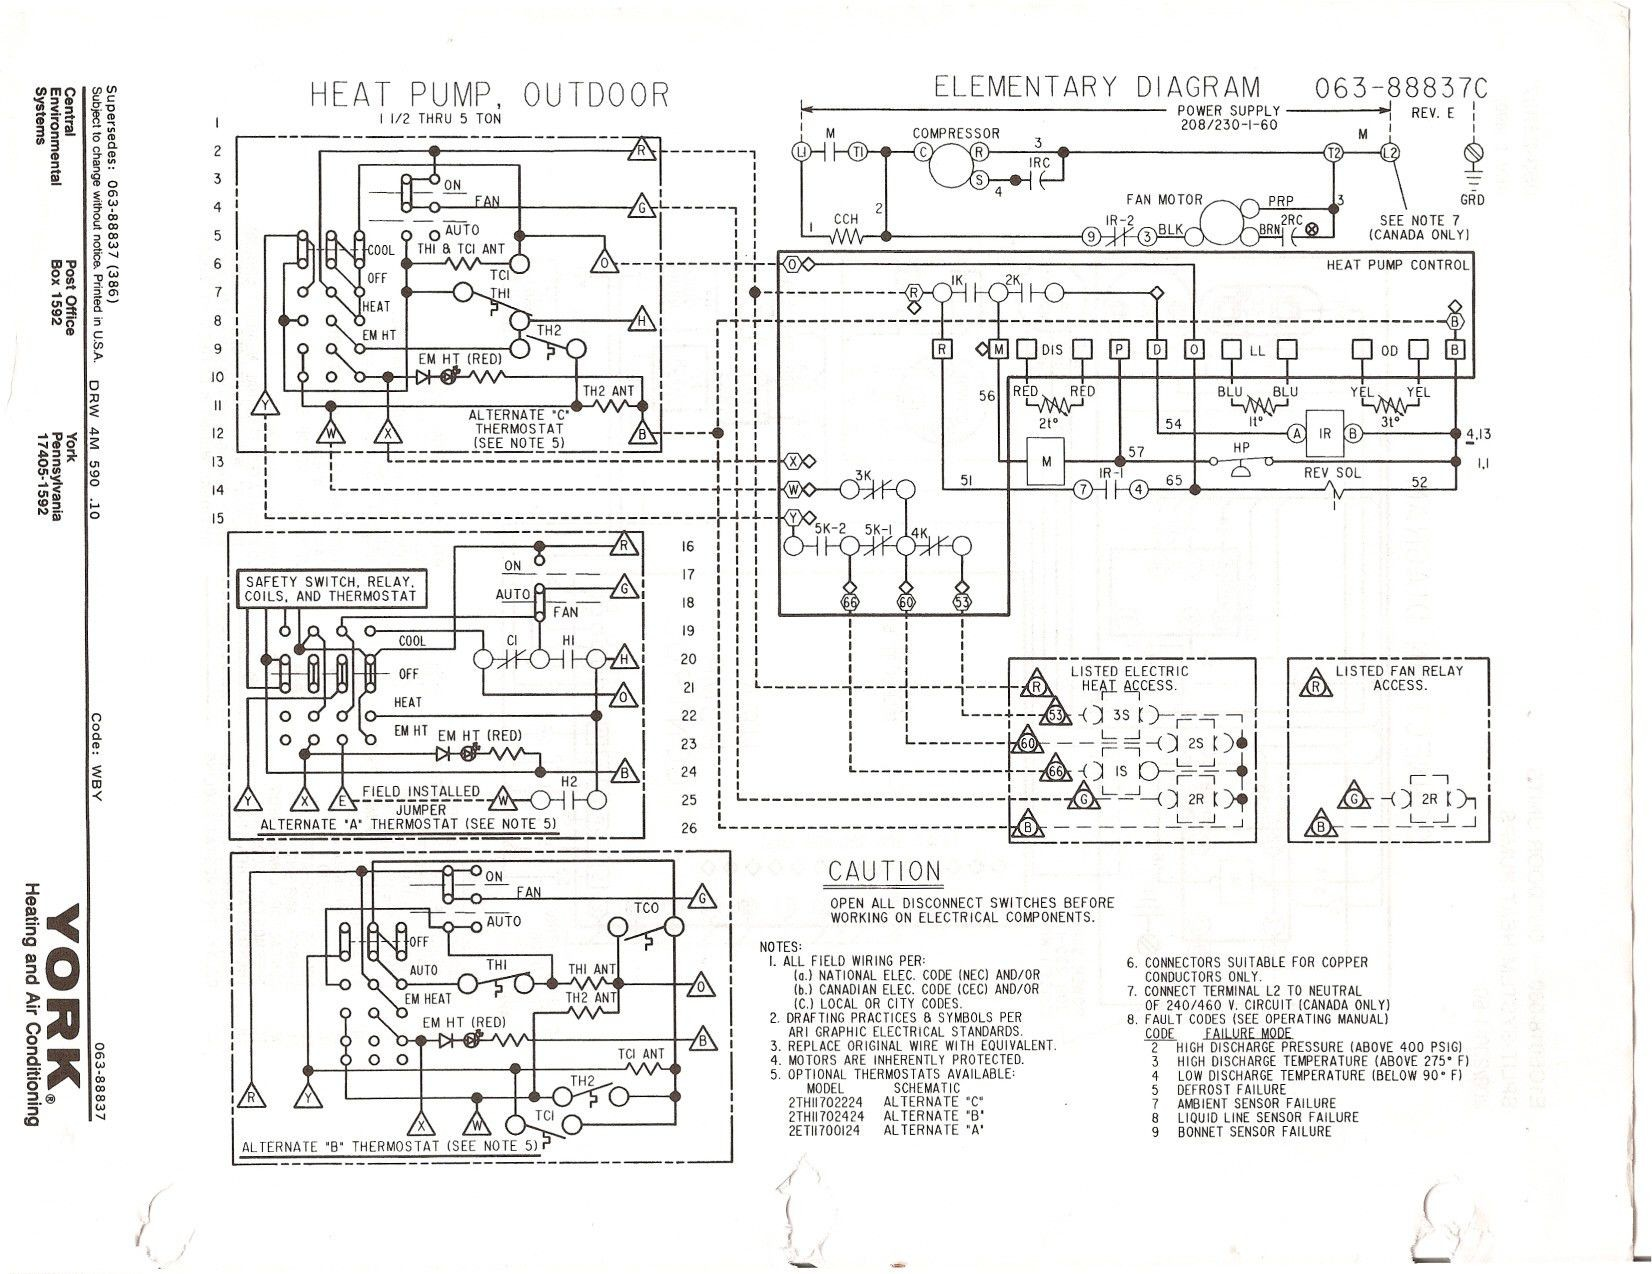 Diagrams Manufacturing Goodman Wiring Ar4f36421ba - Wiring Diagram on goodman heat kit wiring diagram, goodman furnace wiring, goodman hvac fan wiring diagram, goodman gmp075-3 parts, goodman air conditioner schematic diagram, goodman a24 10 wiring diagram, goodman manufacturing wiring diagrams, goodman air handler parts diagram, goodman ac heat pump wiring diagram, goodman package units diagram, goodman heat sequencer wire diagram,